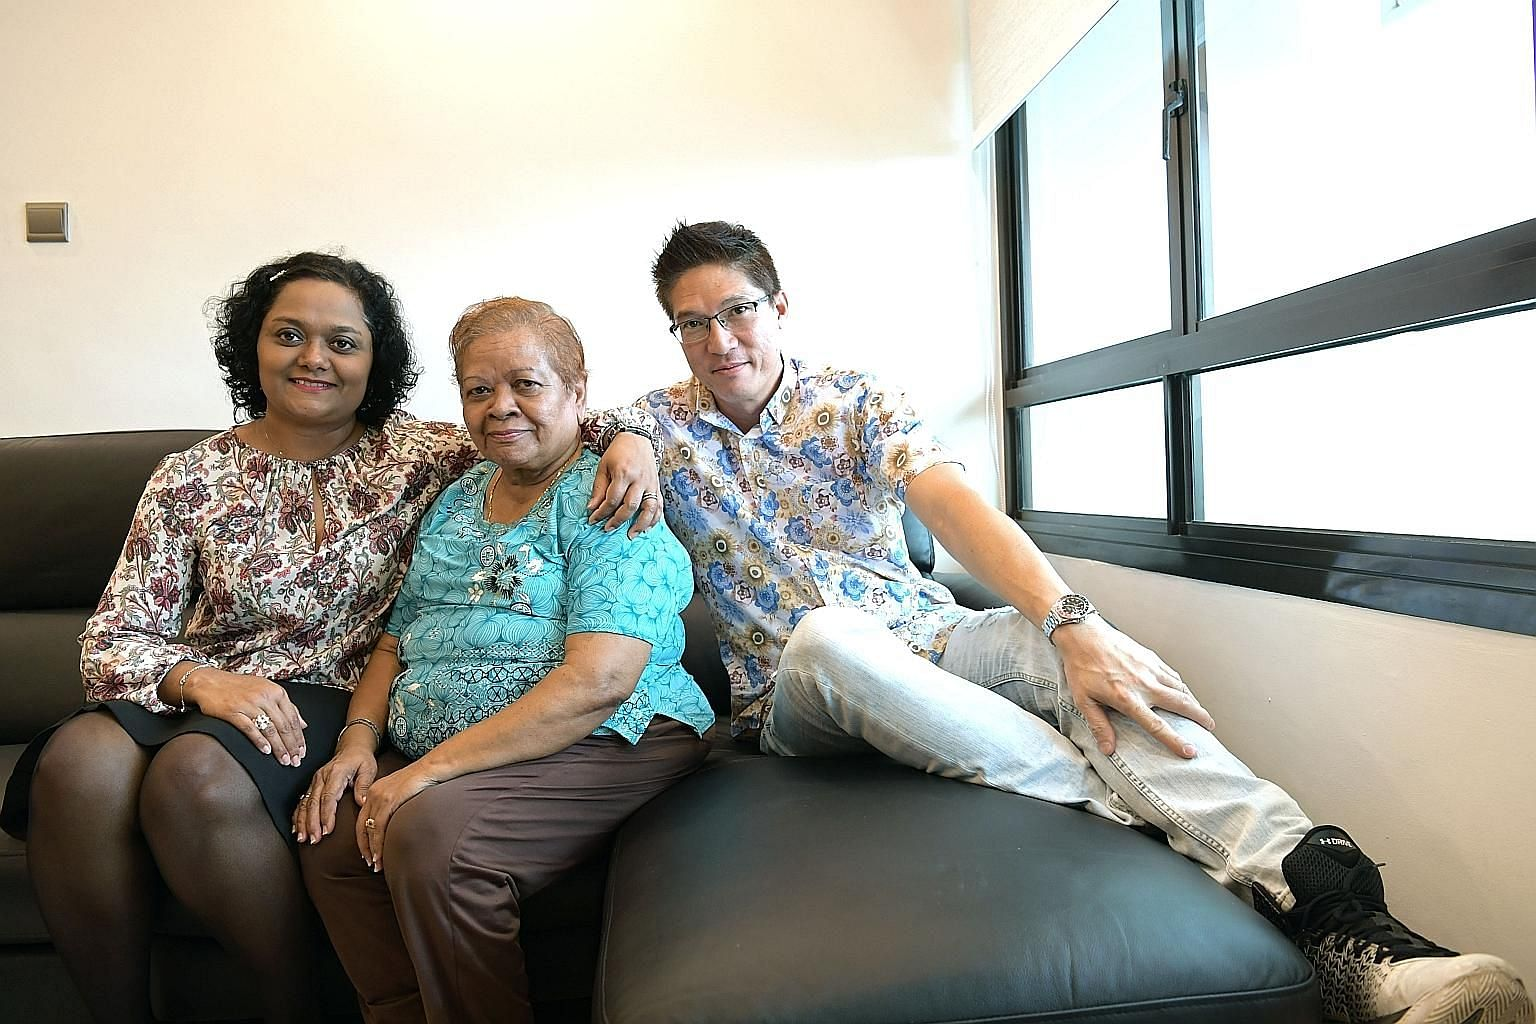 Ms Jacqueline Enoch plans to go for the health screening with her husband Gerard Tan and mother Maria Vasavan. The screening includes a consultation with a doctor when the results are known, and can be done at more than 1,000 general practice clinics